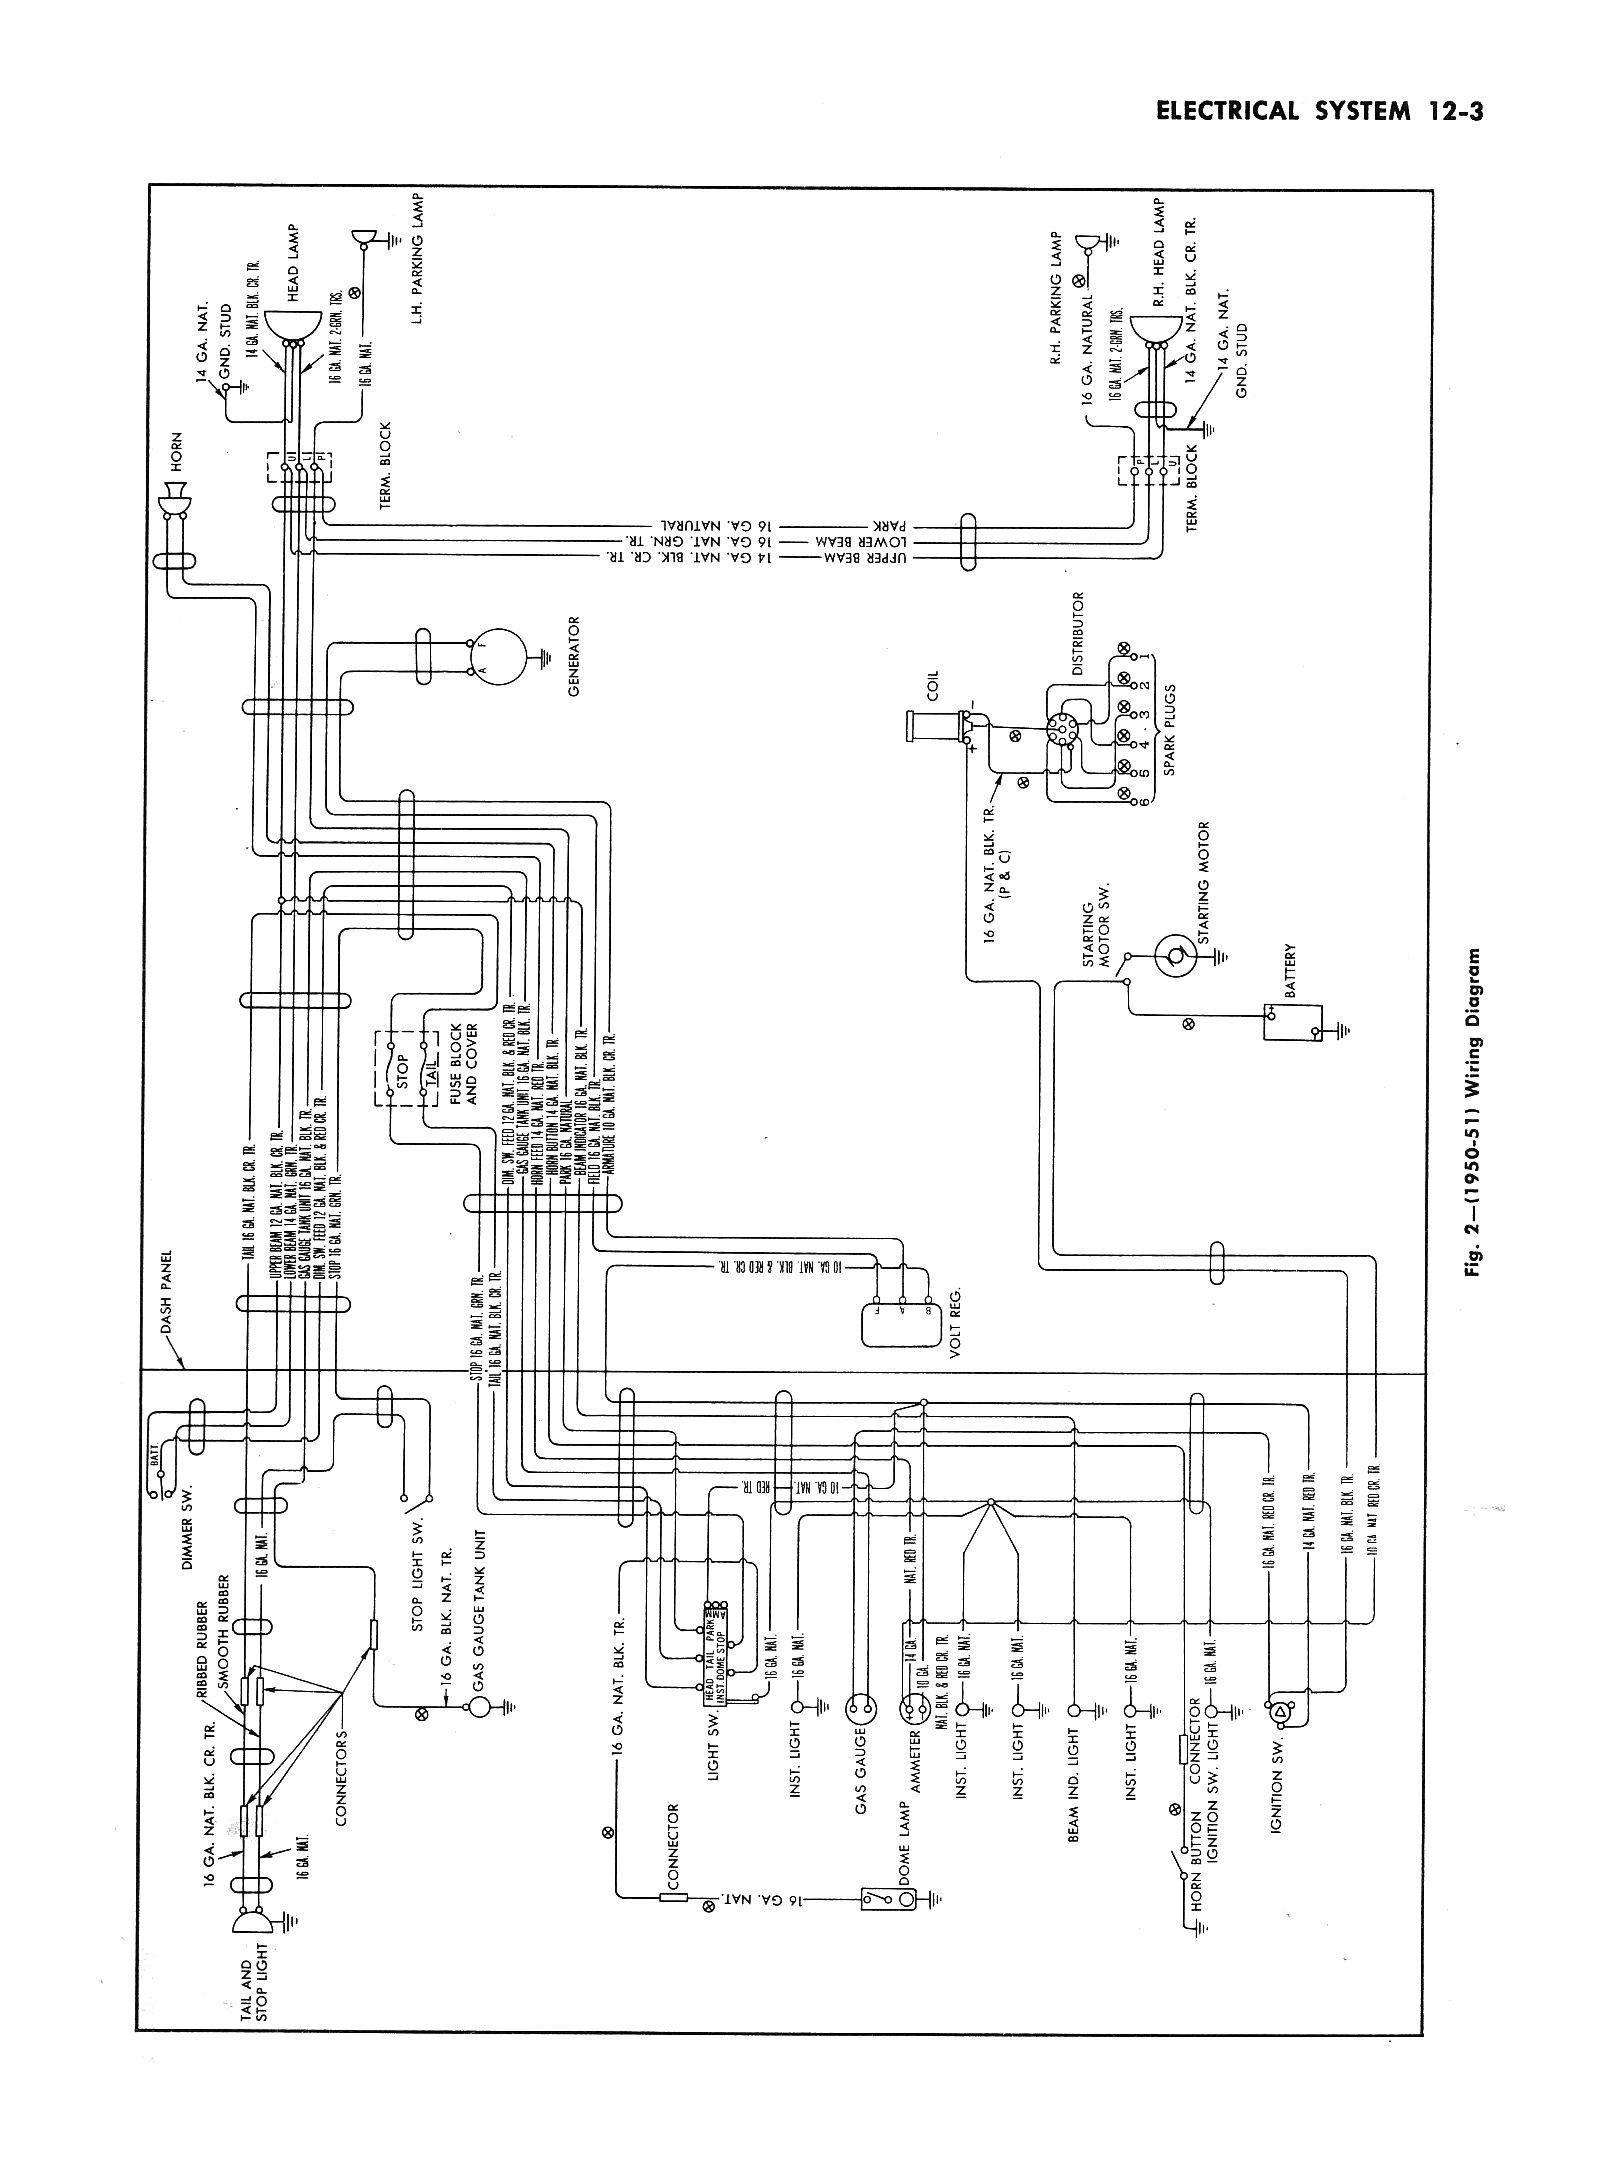 1975 Dodge Truck Wiring Diagram • Wiring Diagram For Free